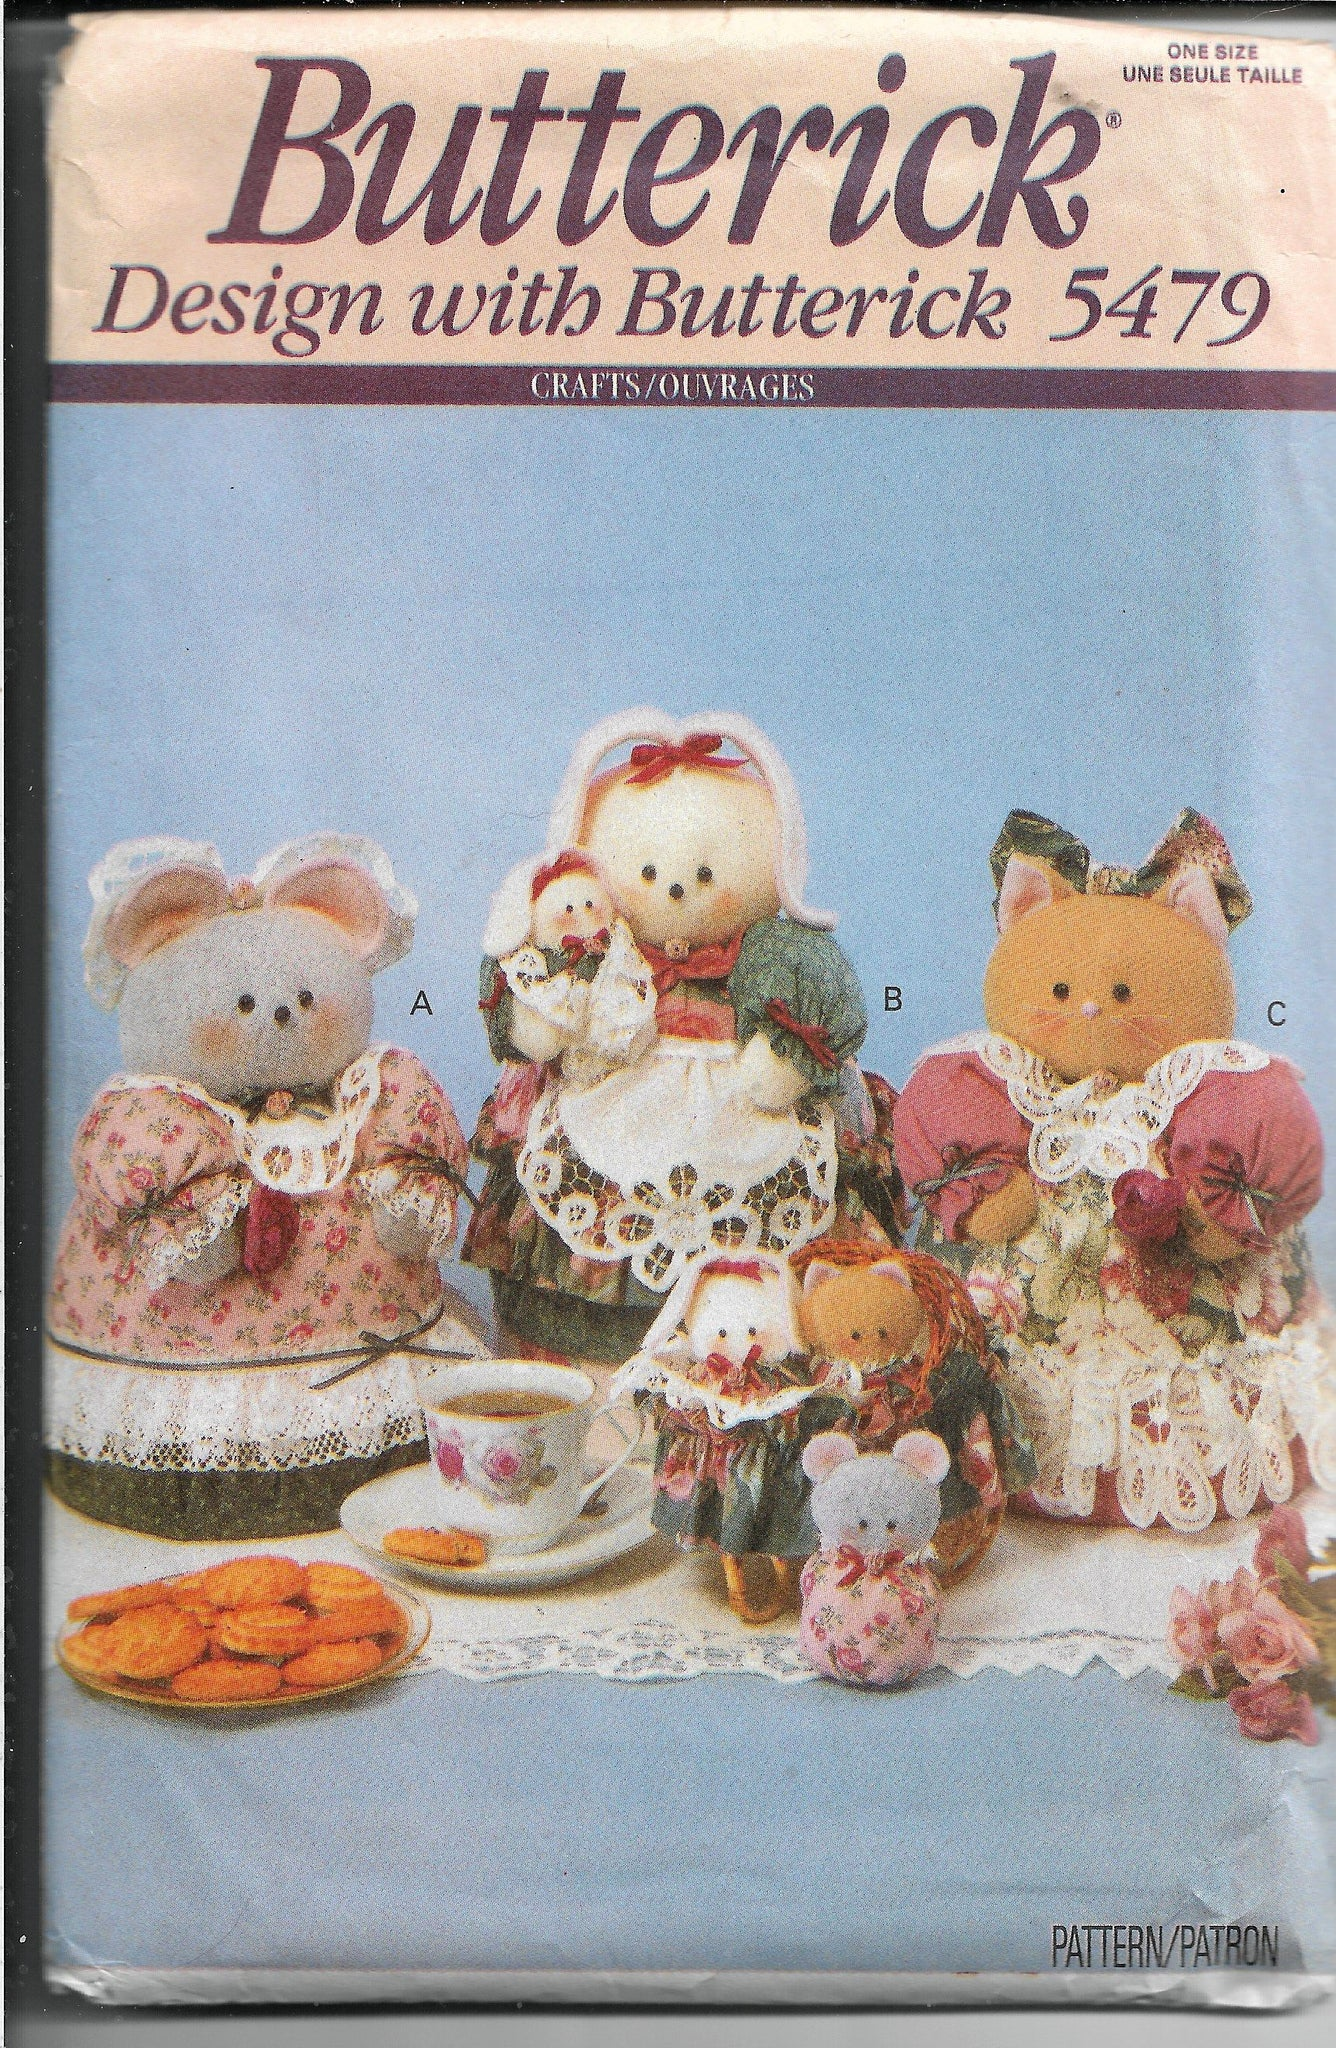 Butterick 5479 Cookie Tin Cover Mouse Bunny Kitten Sewing Craft Pattern 1990s - VintageStitching - Vintage Sewing Patterns